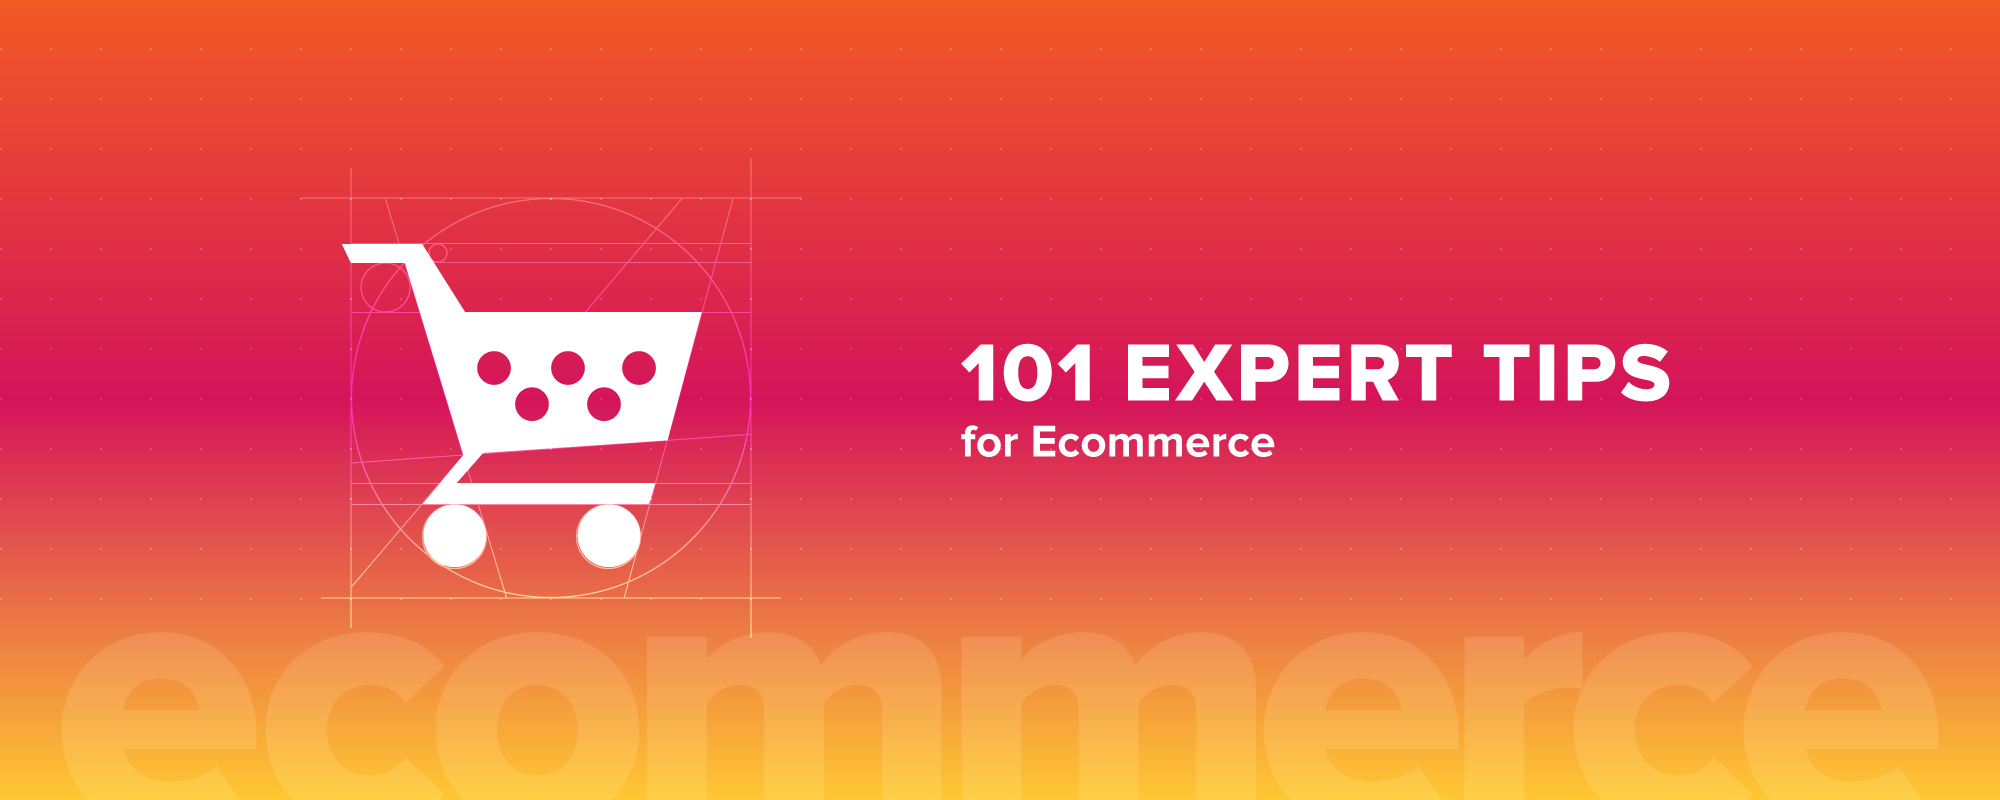 101 Actionable Ecommerce Tips from Experts on Running an Online Marketplace